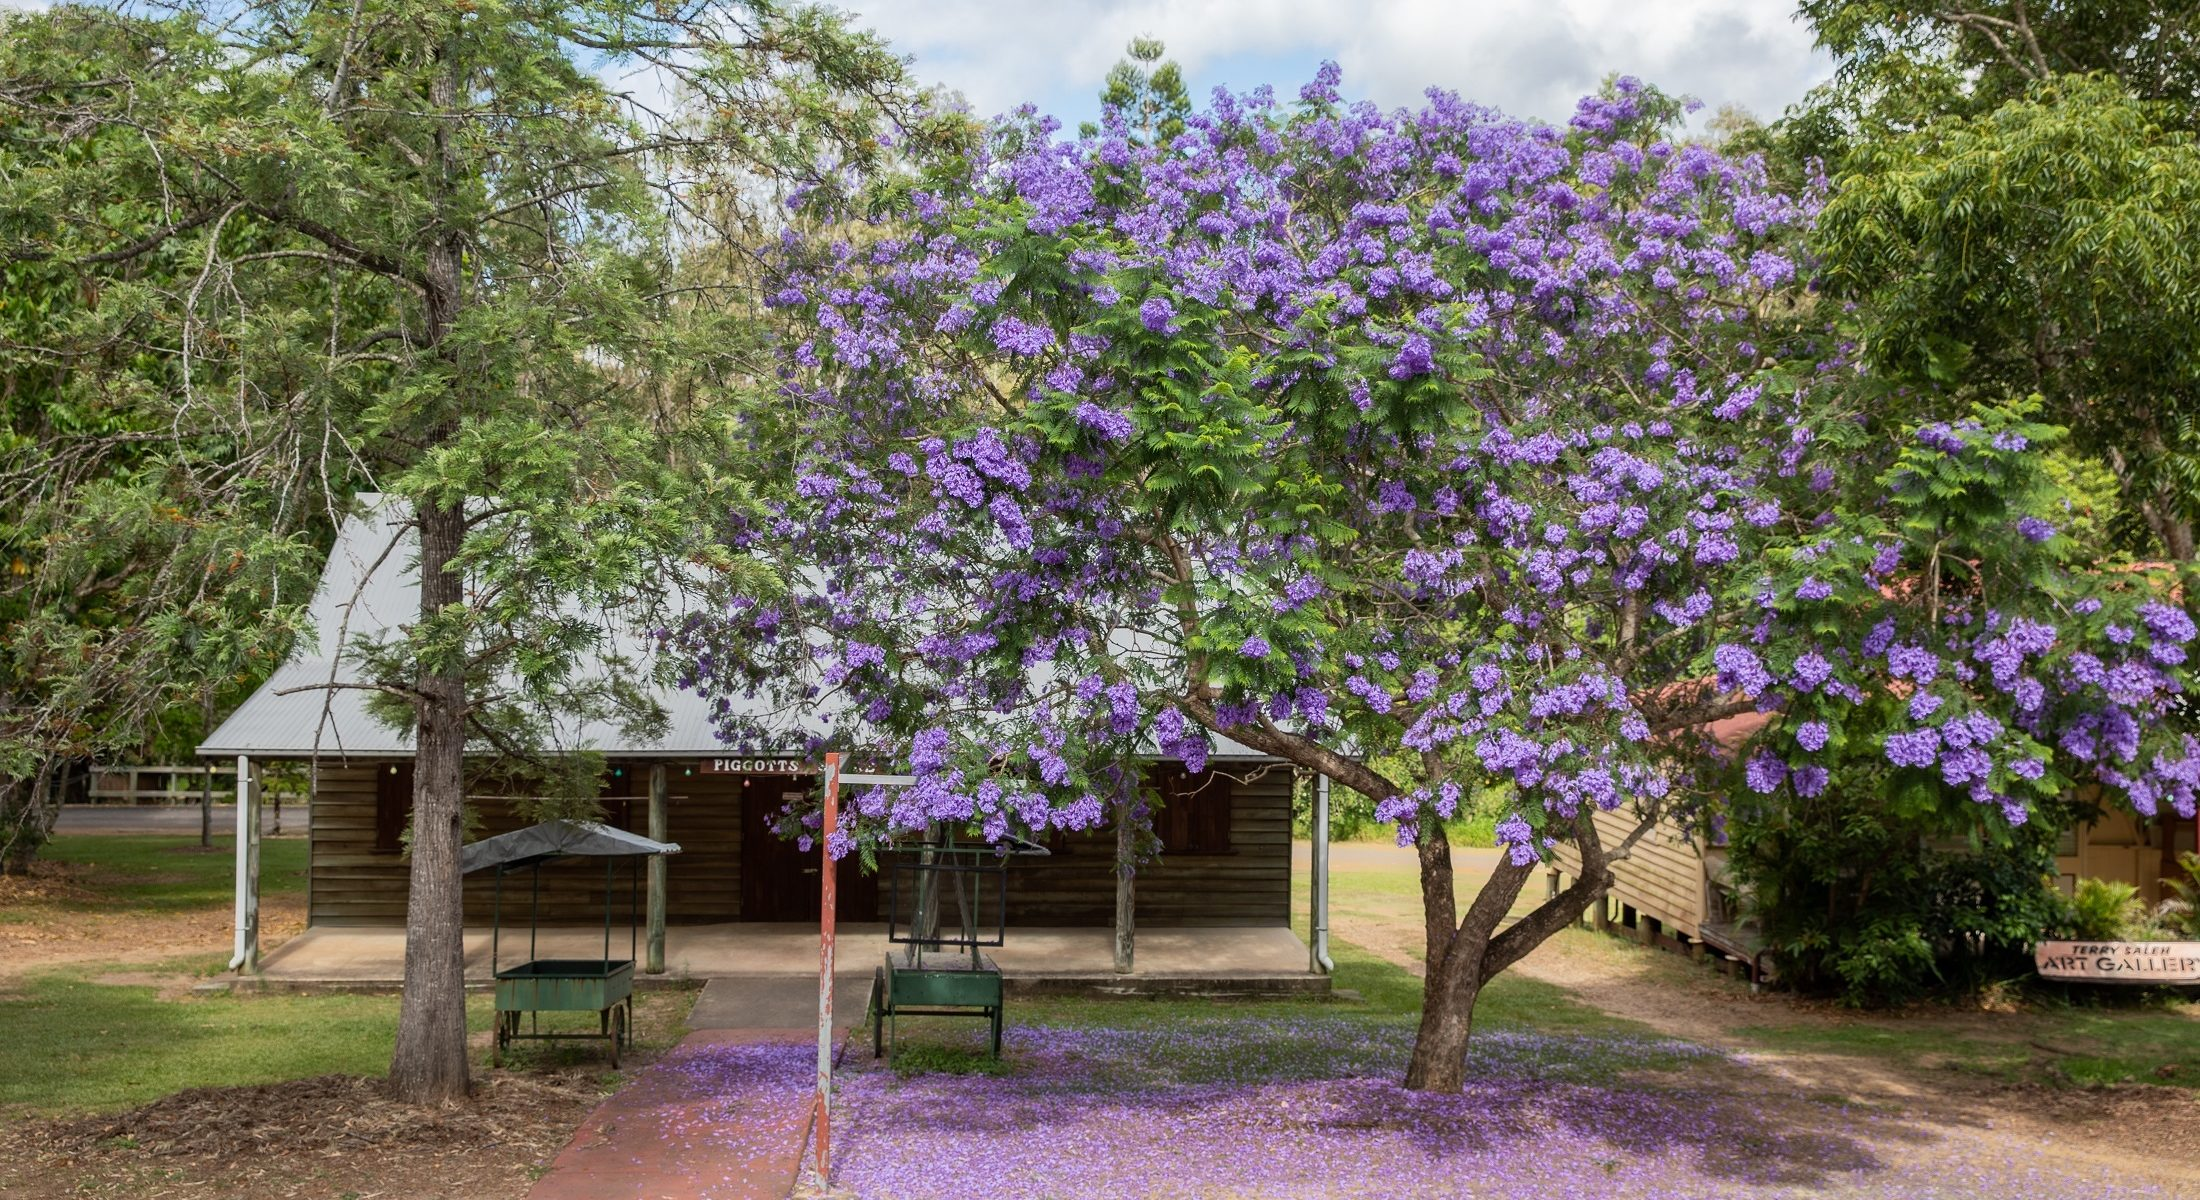 Old Petrie Town Jacaranda Tree in front of building Moreton Bay Region